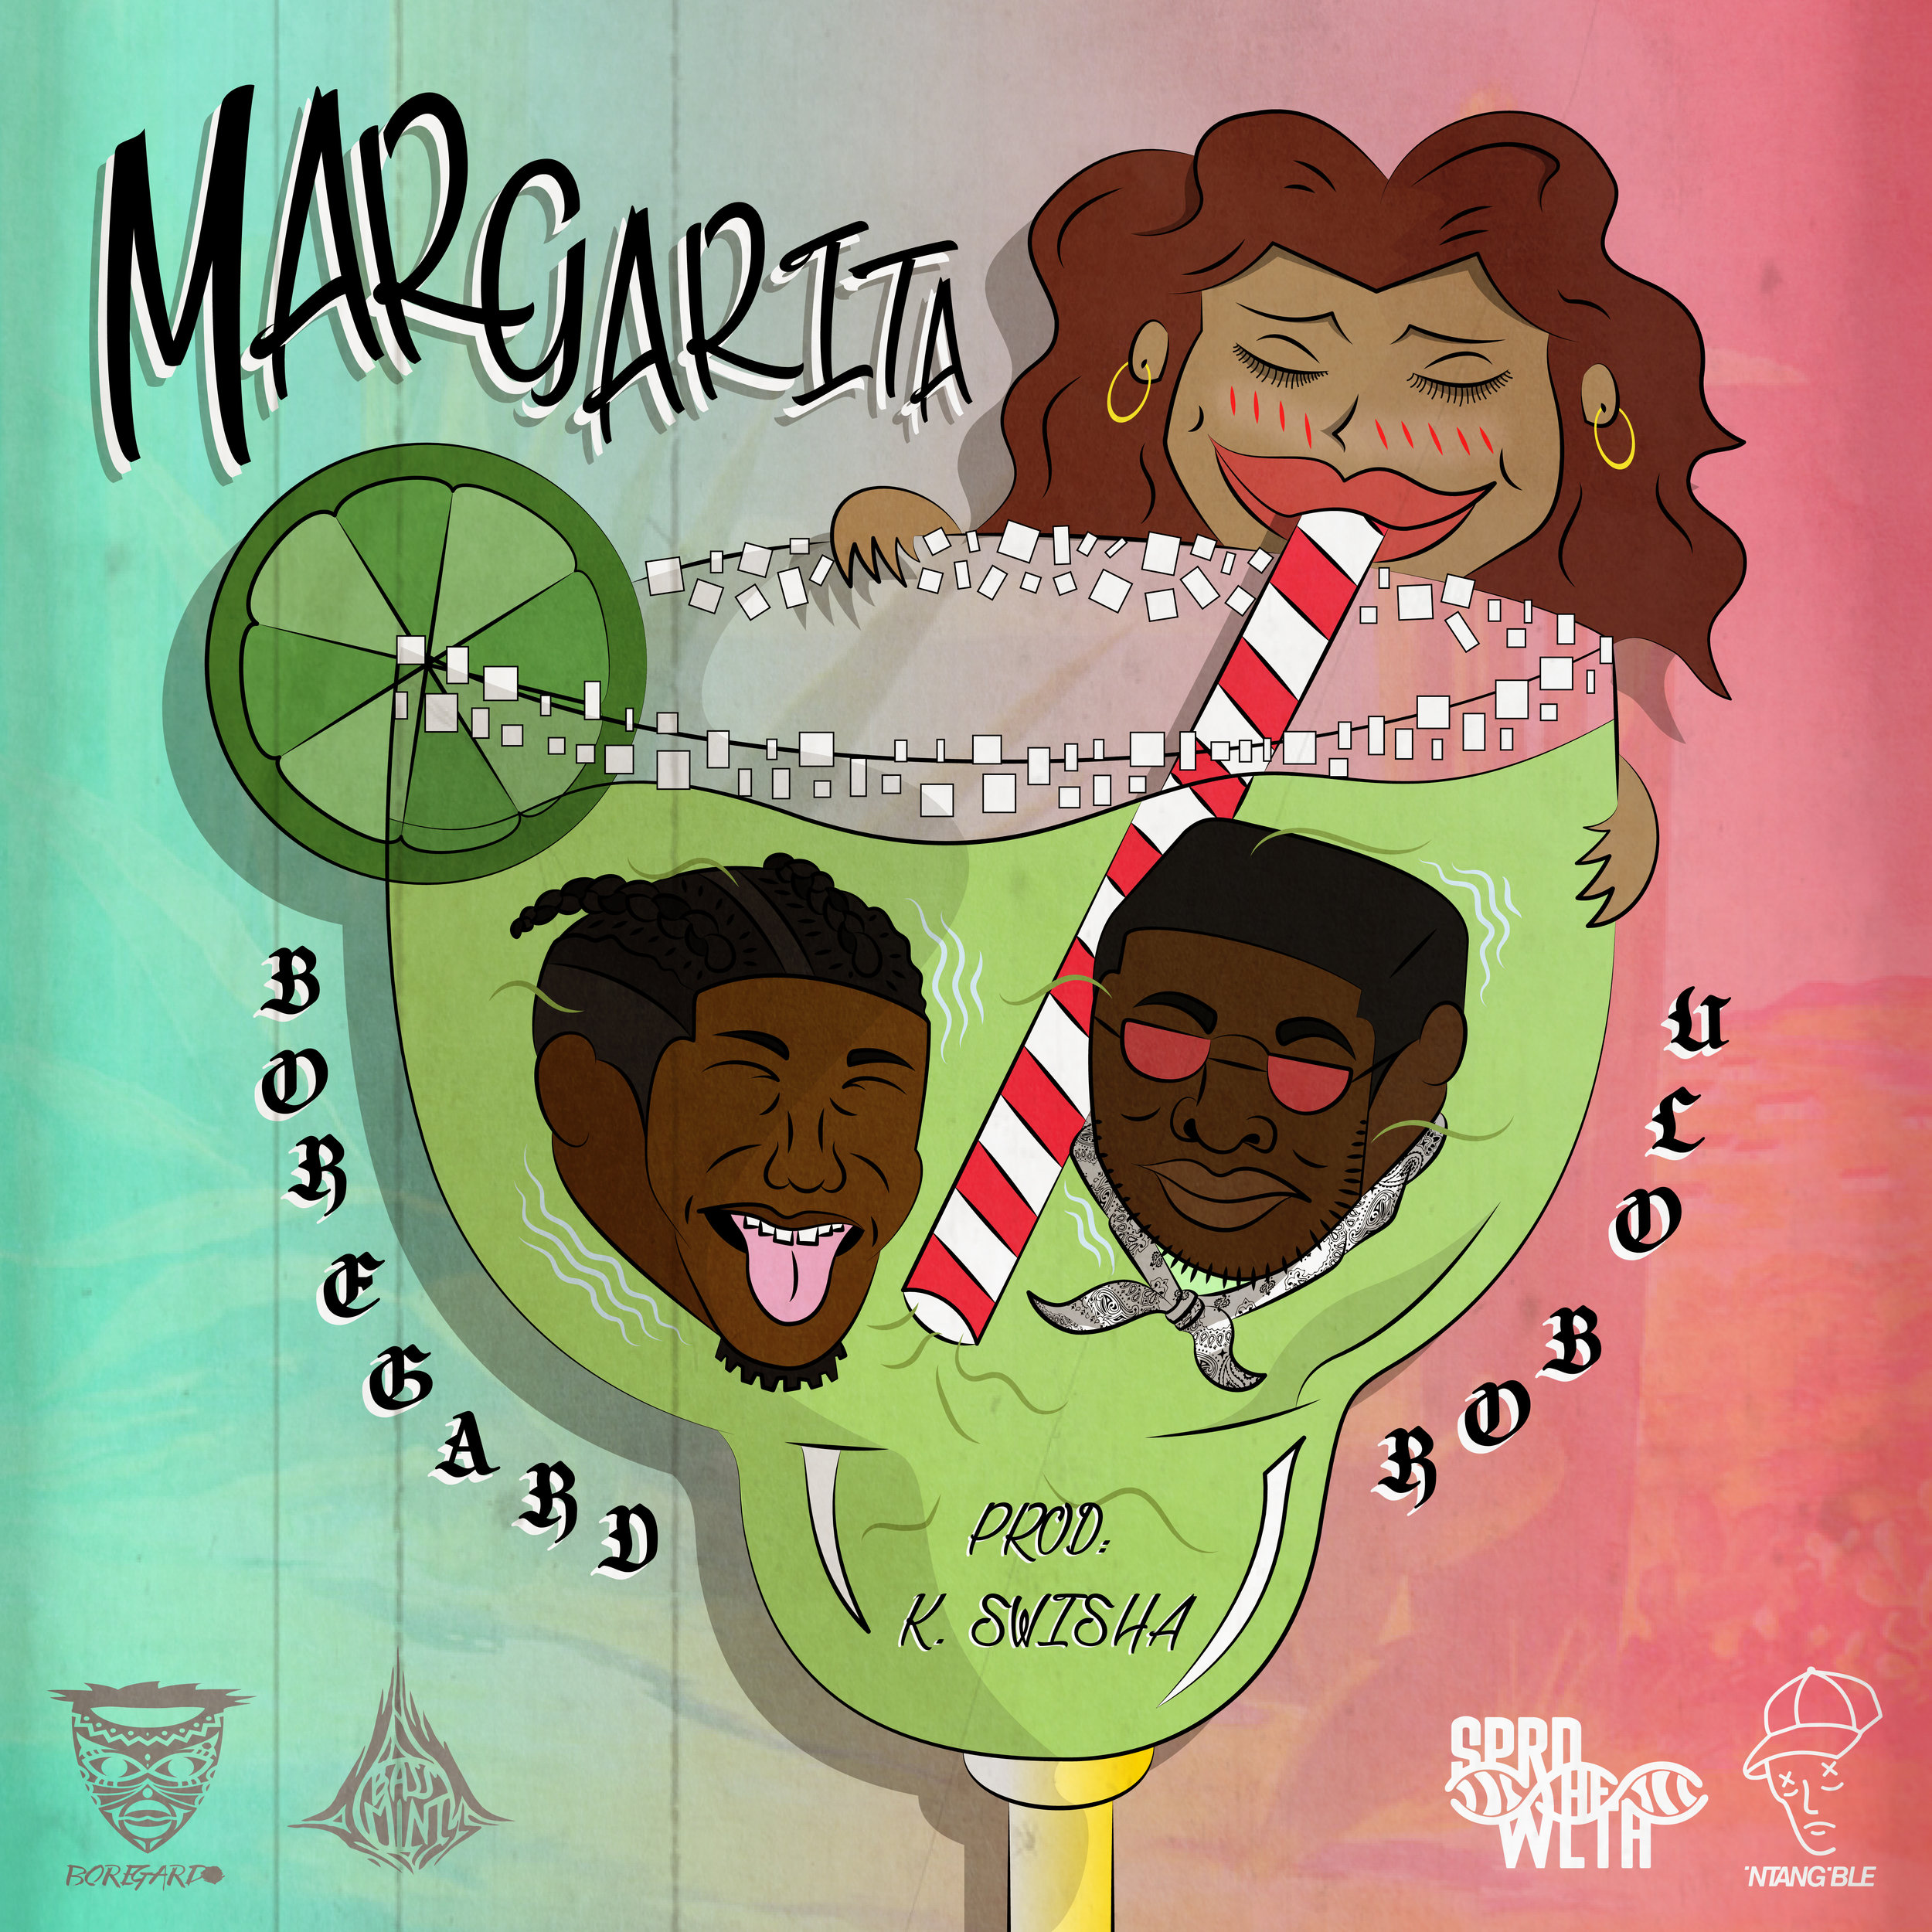 BOREGARD. & RobOlu – 'Margarita' - Jan 10, 2017 - Jodye Stojakovic, Prescribed Music